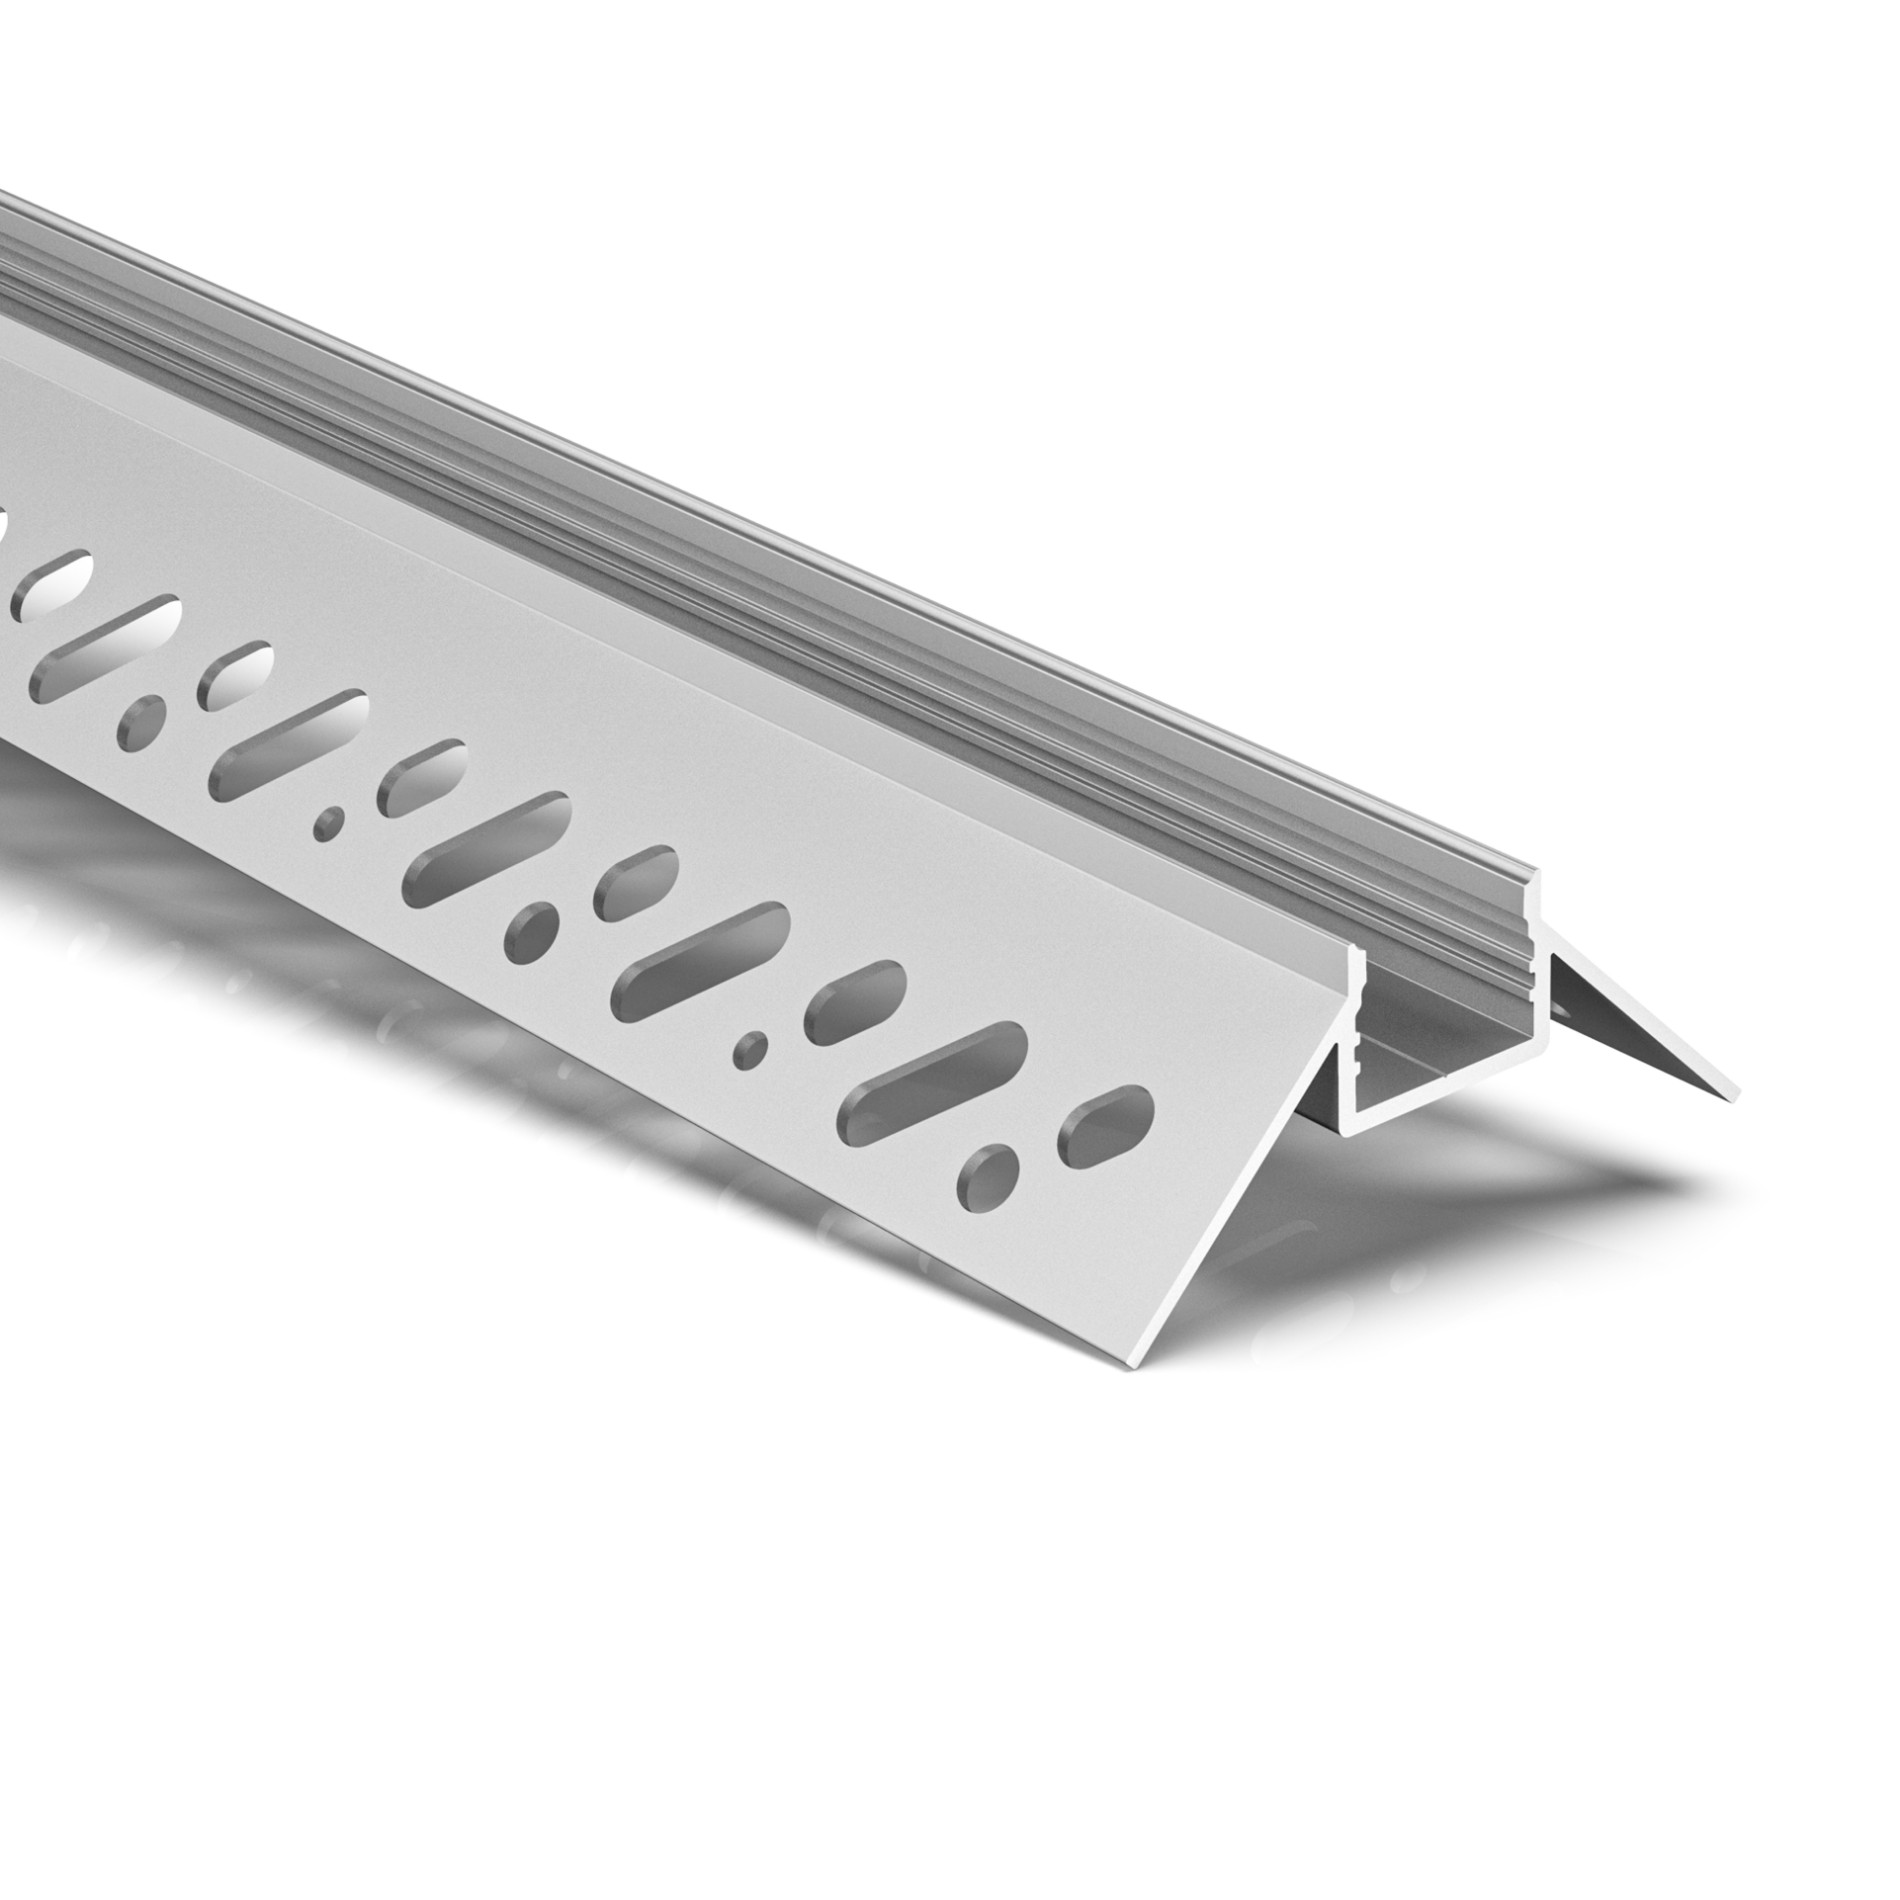 CT7 Trimless Aluminium Extrusions for recessing into plasterboard outside corner 55.6x23.7mm